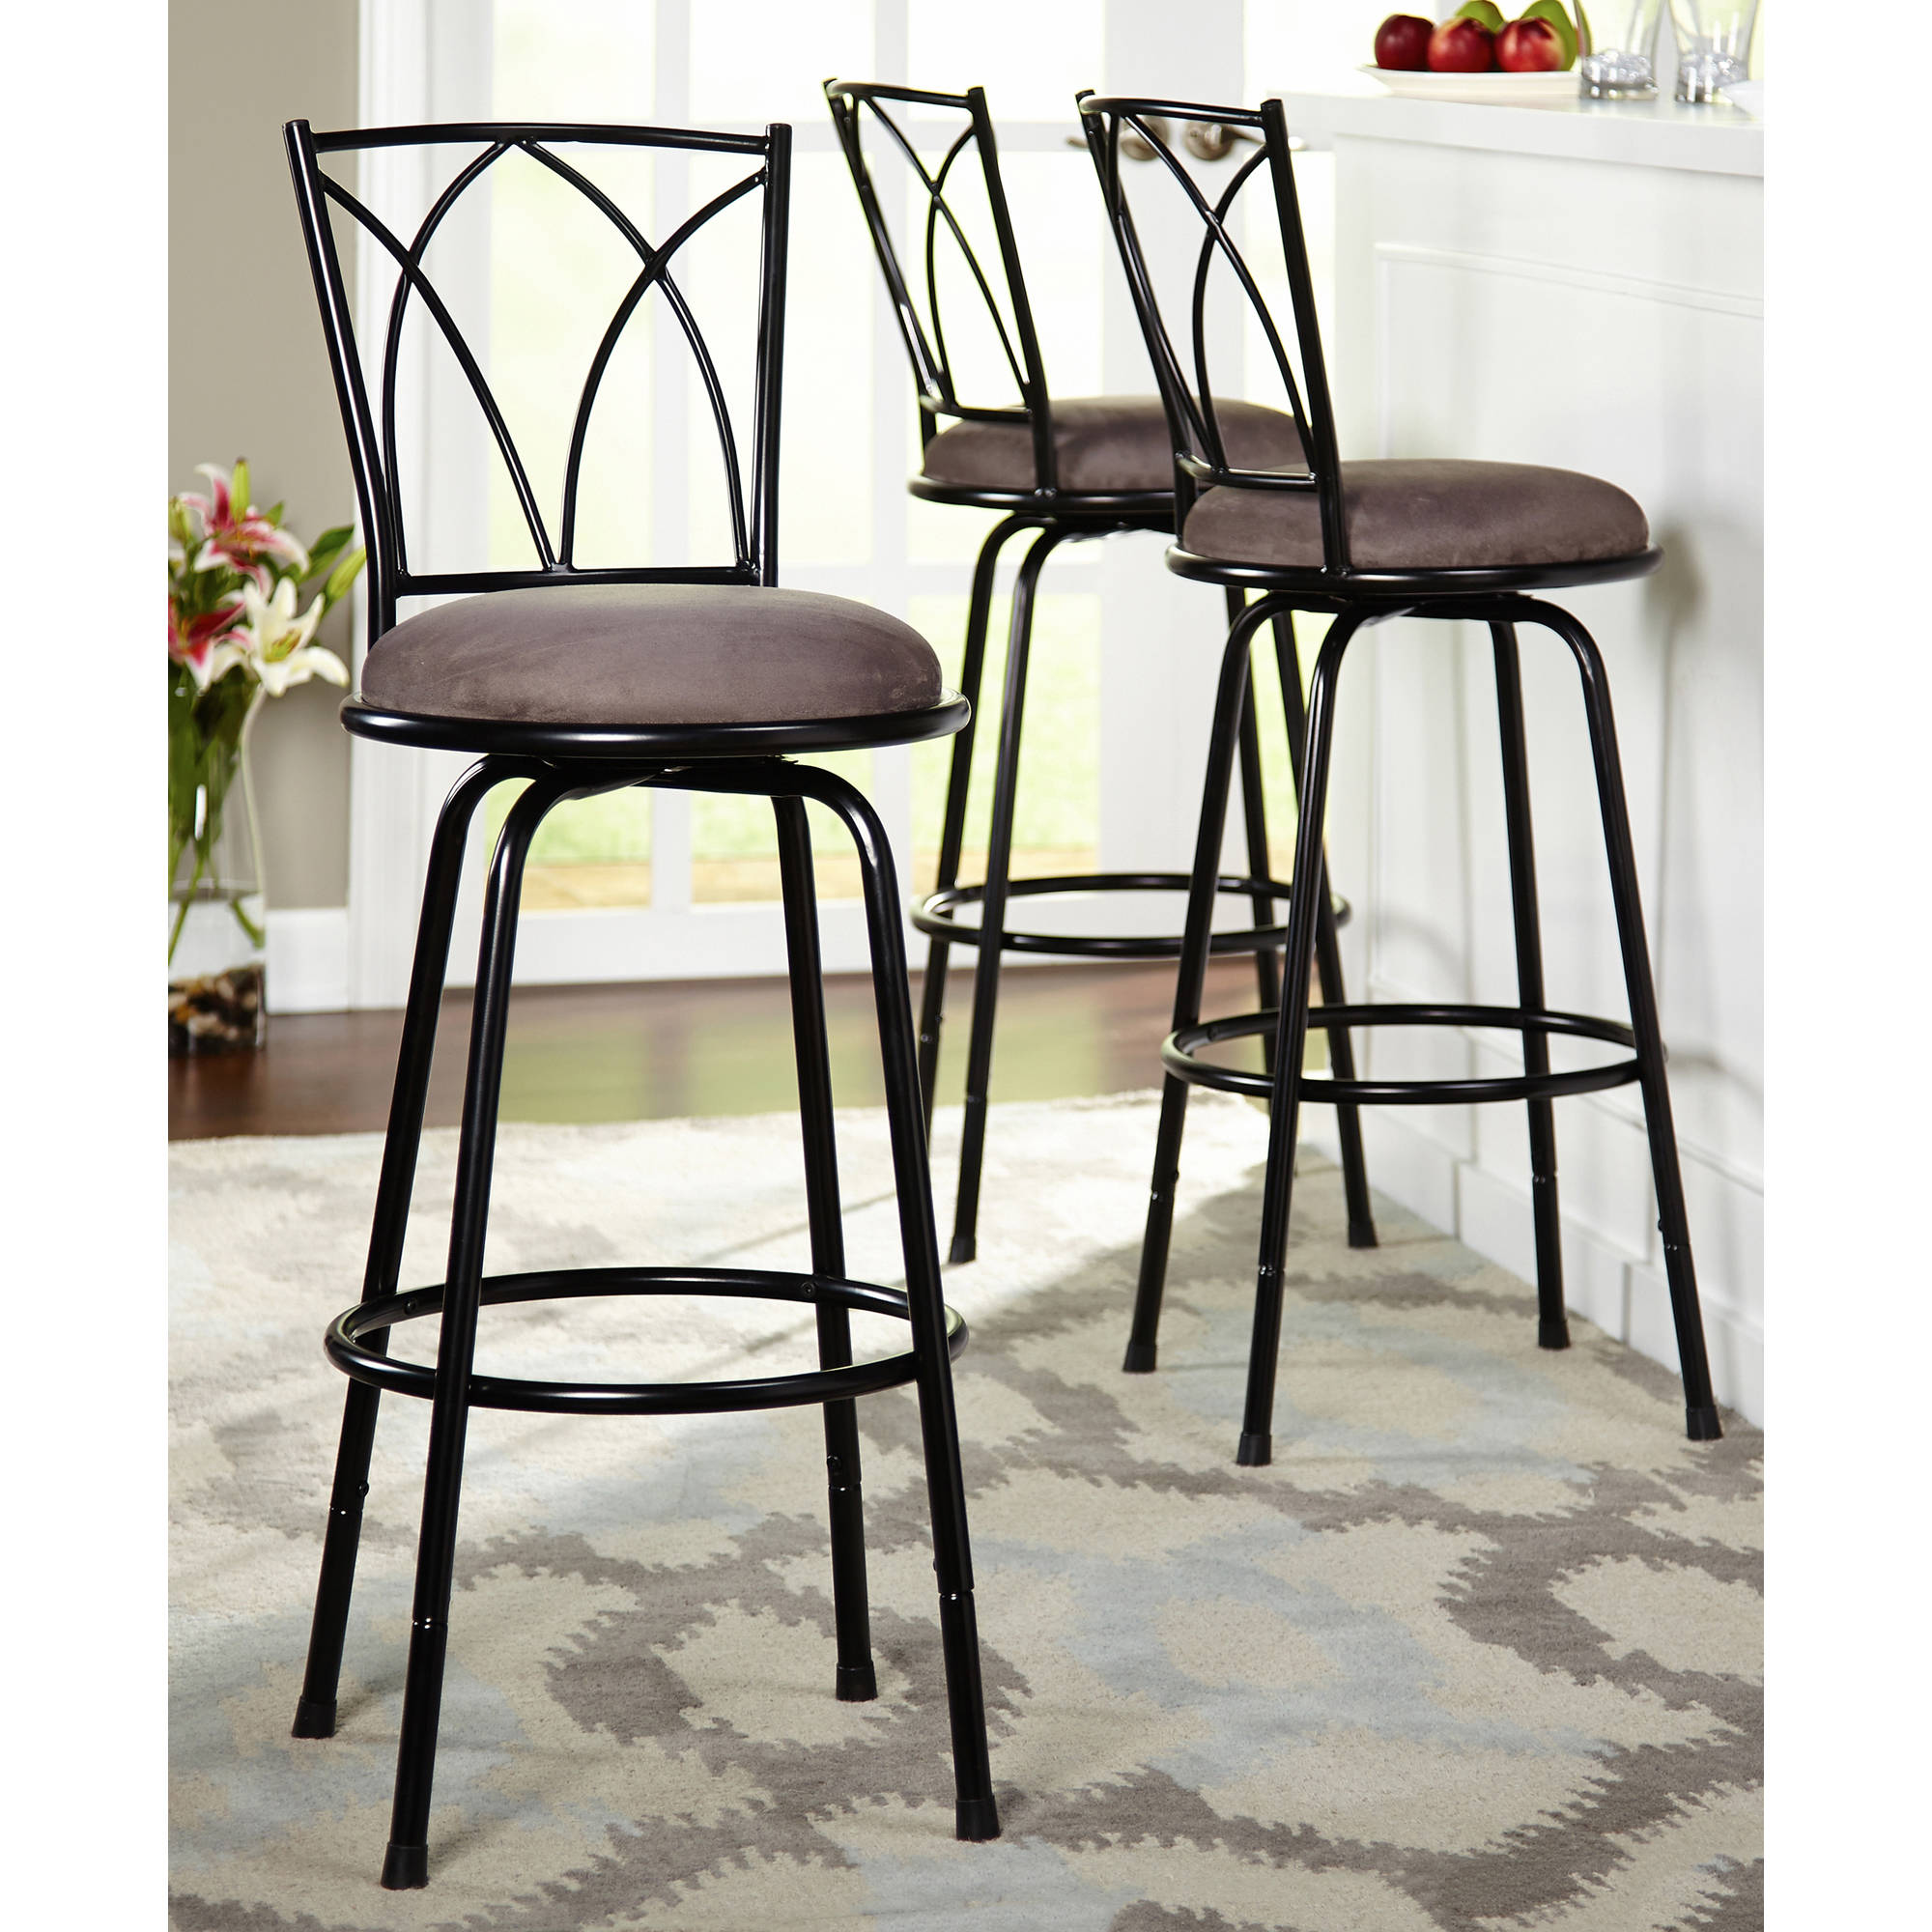 delta adjustable metal barstools 3piece set black